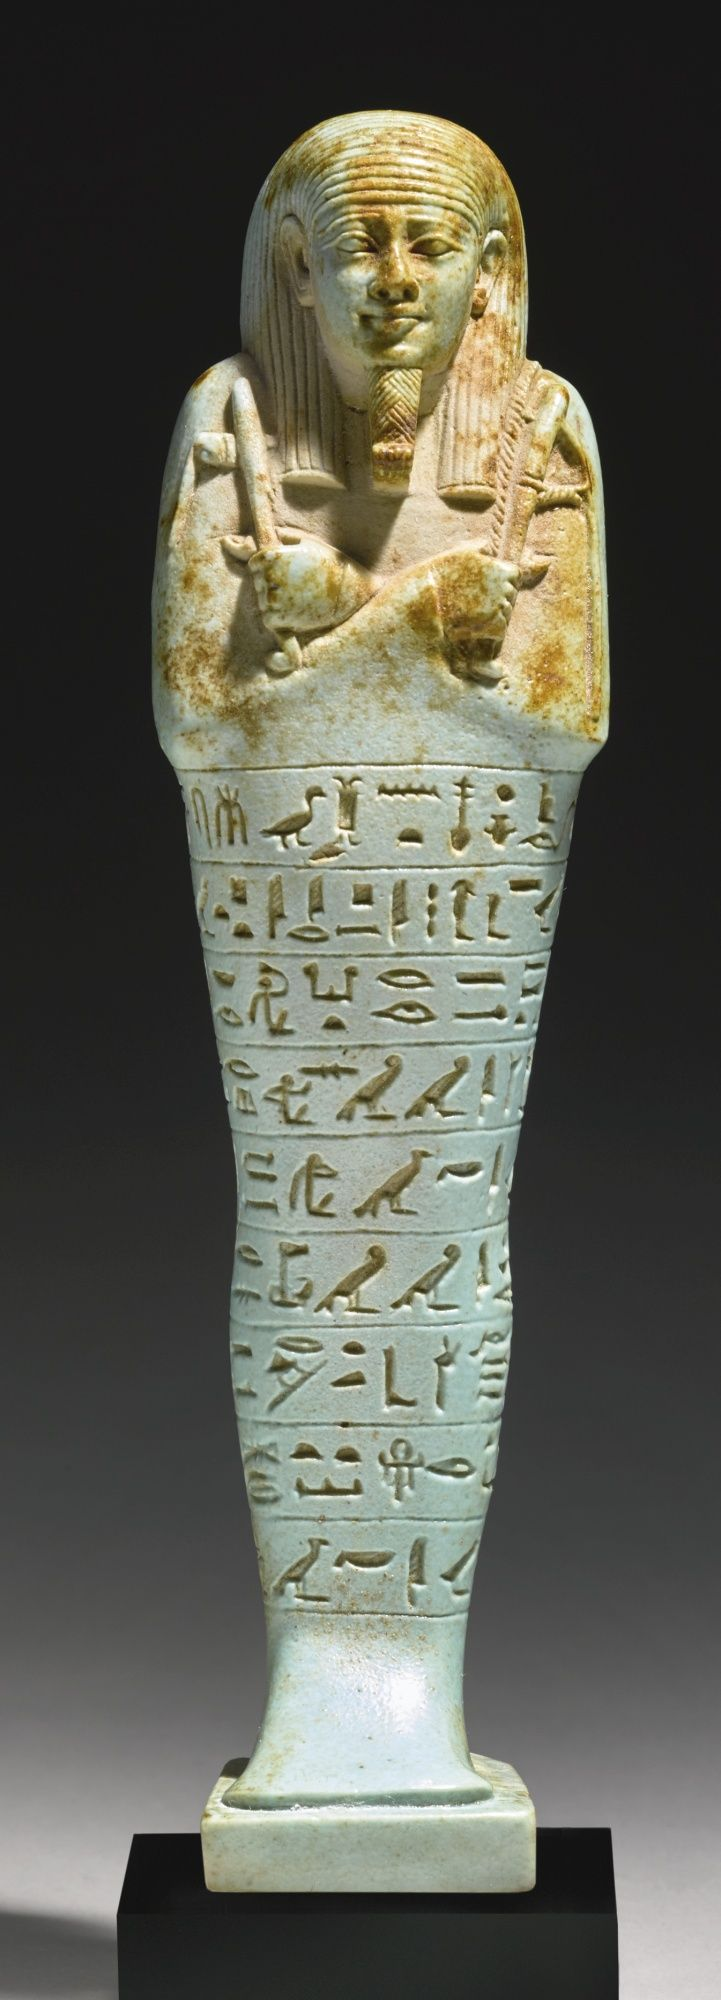 An Egyptian Pale Blue Faience Ushabti of Neferibresaneith, 26th Dynasty, reign of Amasis, 570-526 B.C. | lot | Sotheby's: